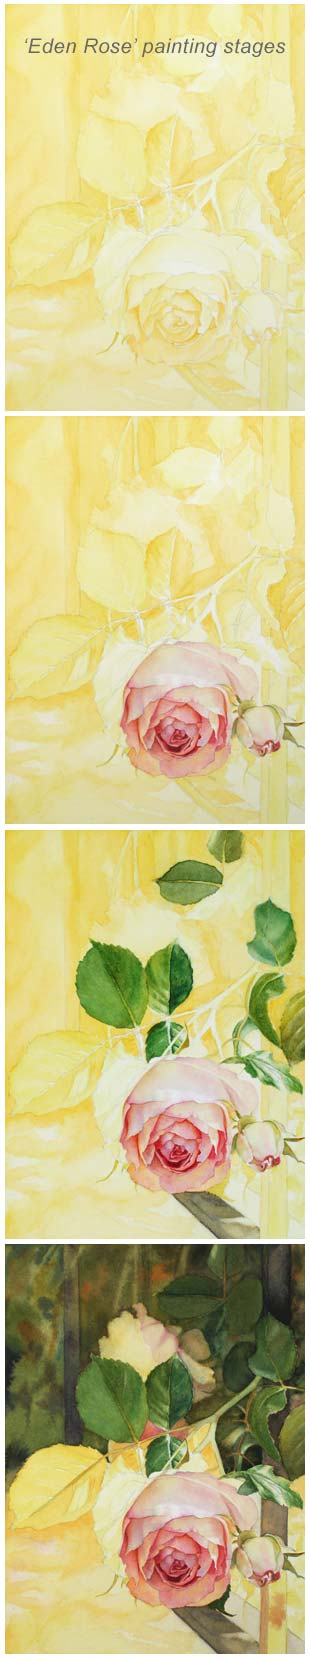 How to paint a Rose - Watercolor Art Lessons